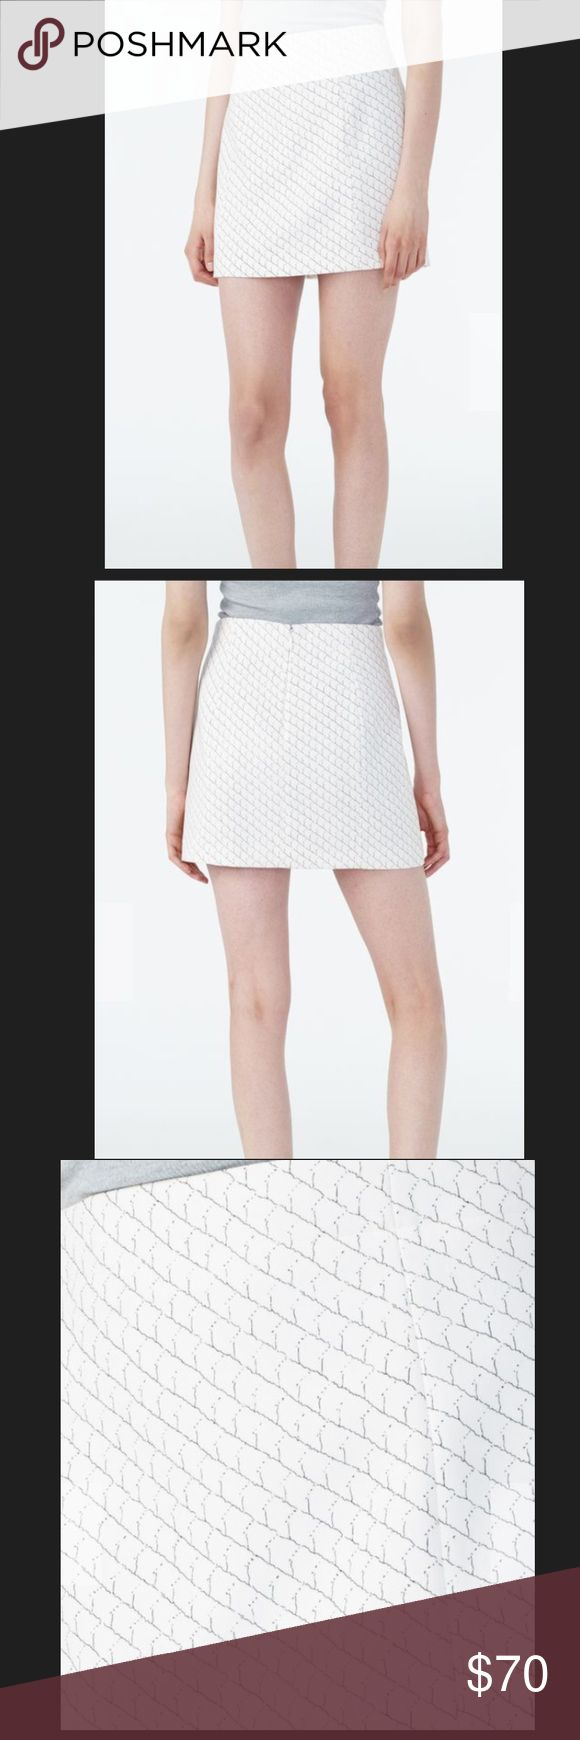 """A/X ARMANI EXCHANGE PRINTED SUITED MINI SKIRT A/X ARMANI EXCHANGE PRINTED SUITED MINI SKIRT.  Size : 0 Approx Length 15"""".                                                  Size : 6 Approx Length 15 1/2"""".                                            Size : 8 Approx Length 16"""" A/X Armani Exchange Skirts Mini"""